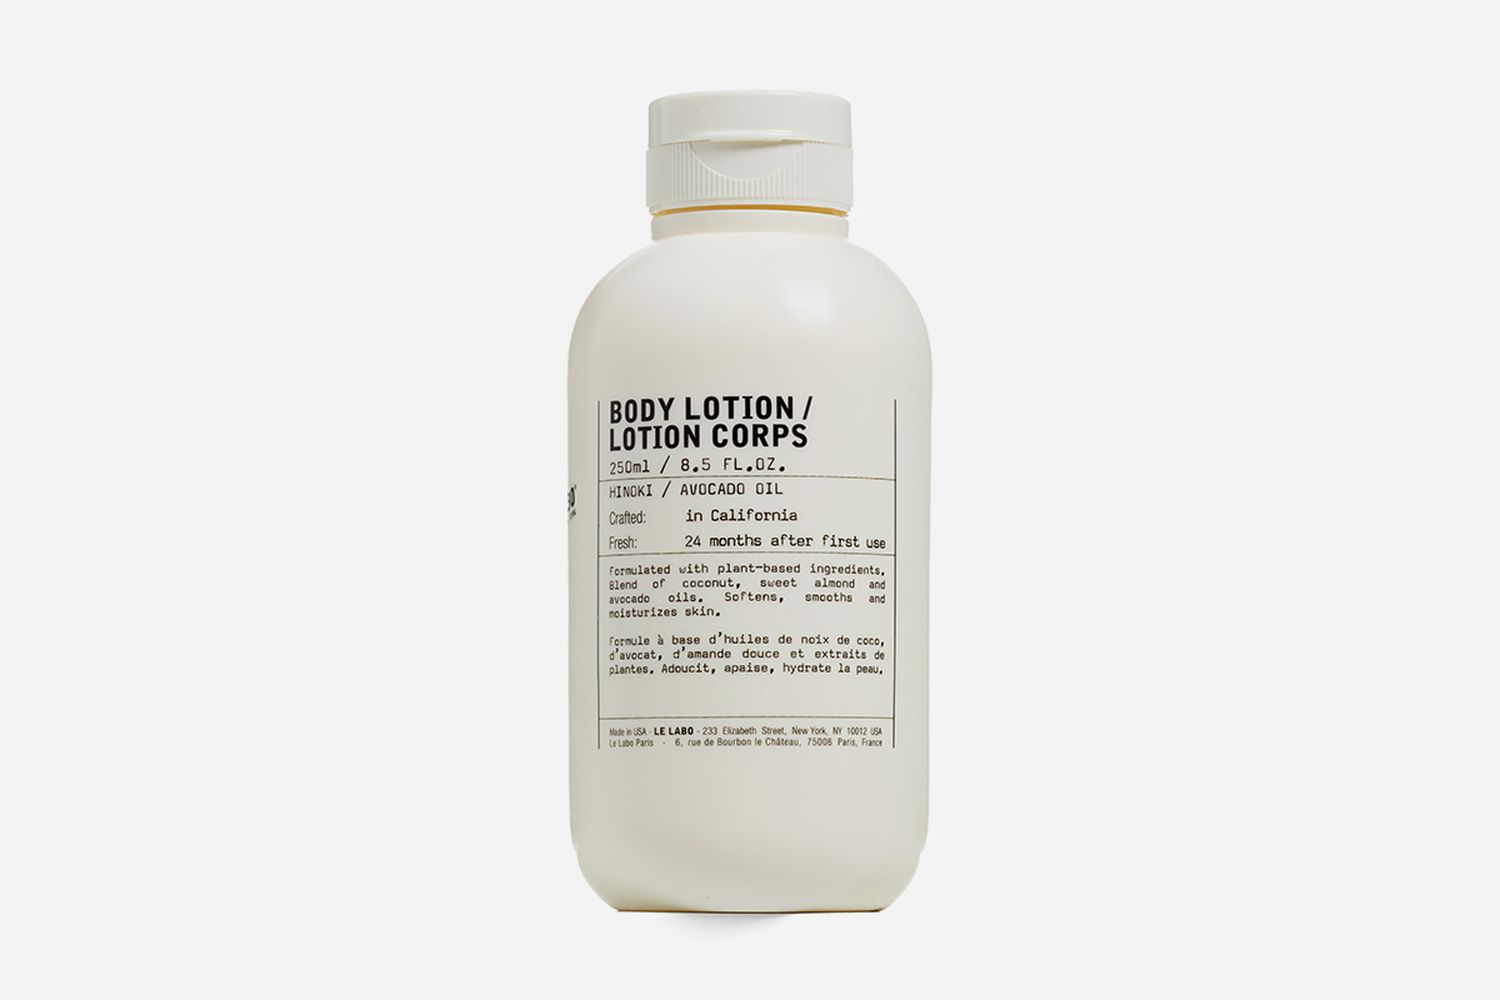 Body Lotion